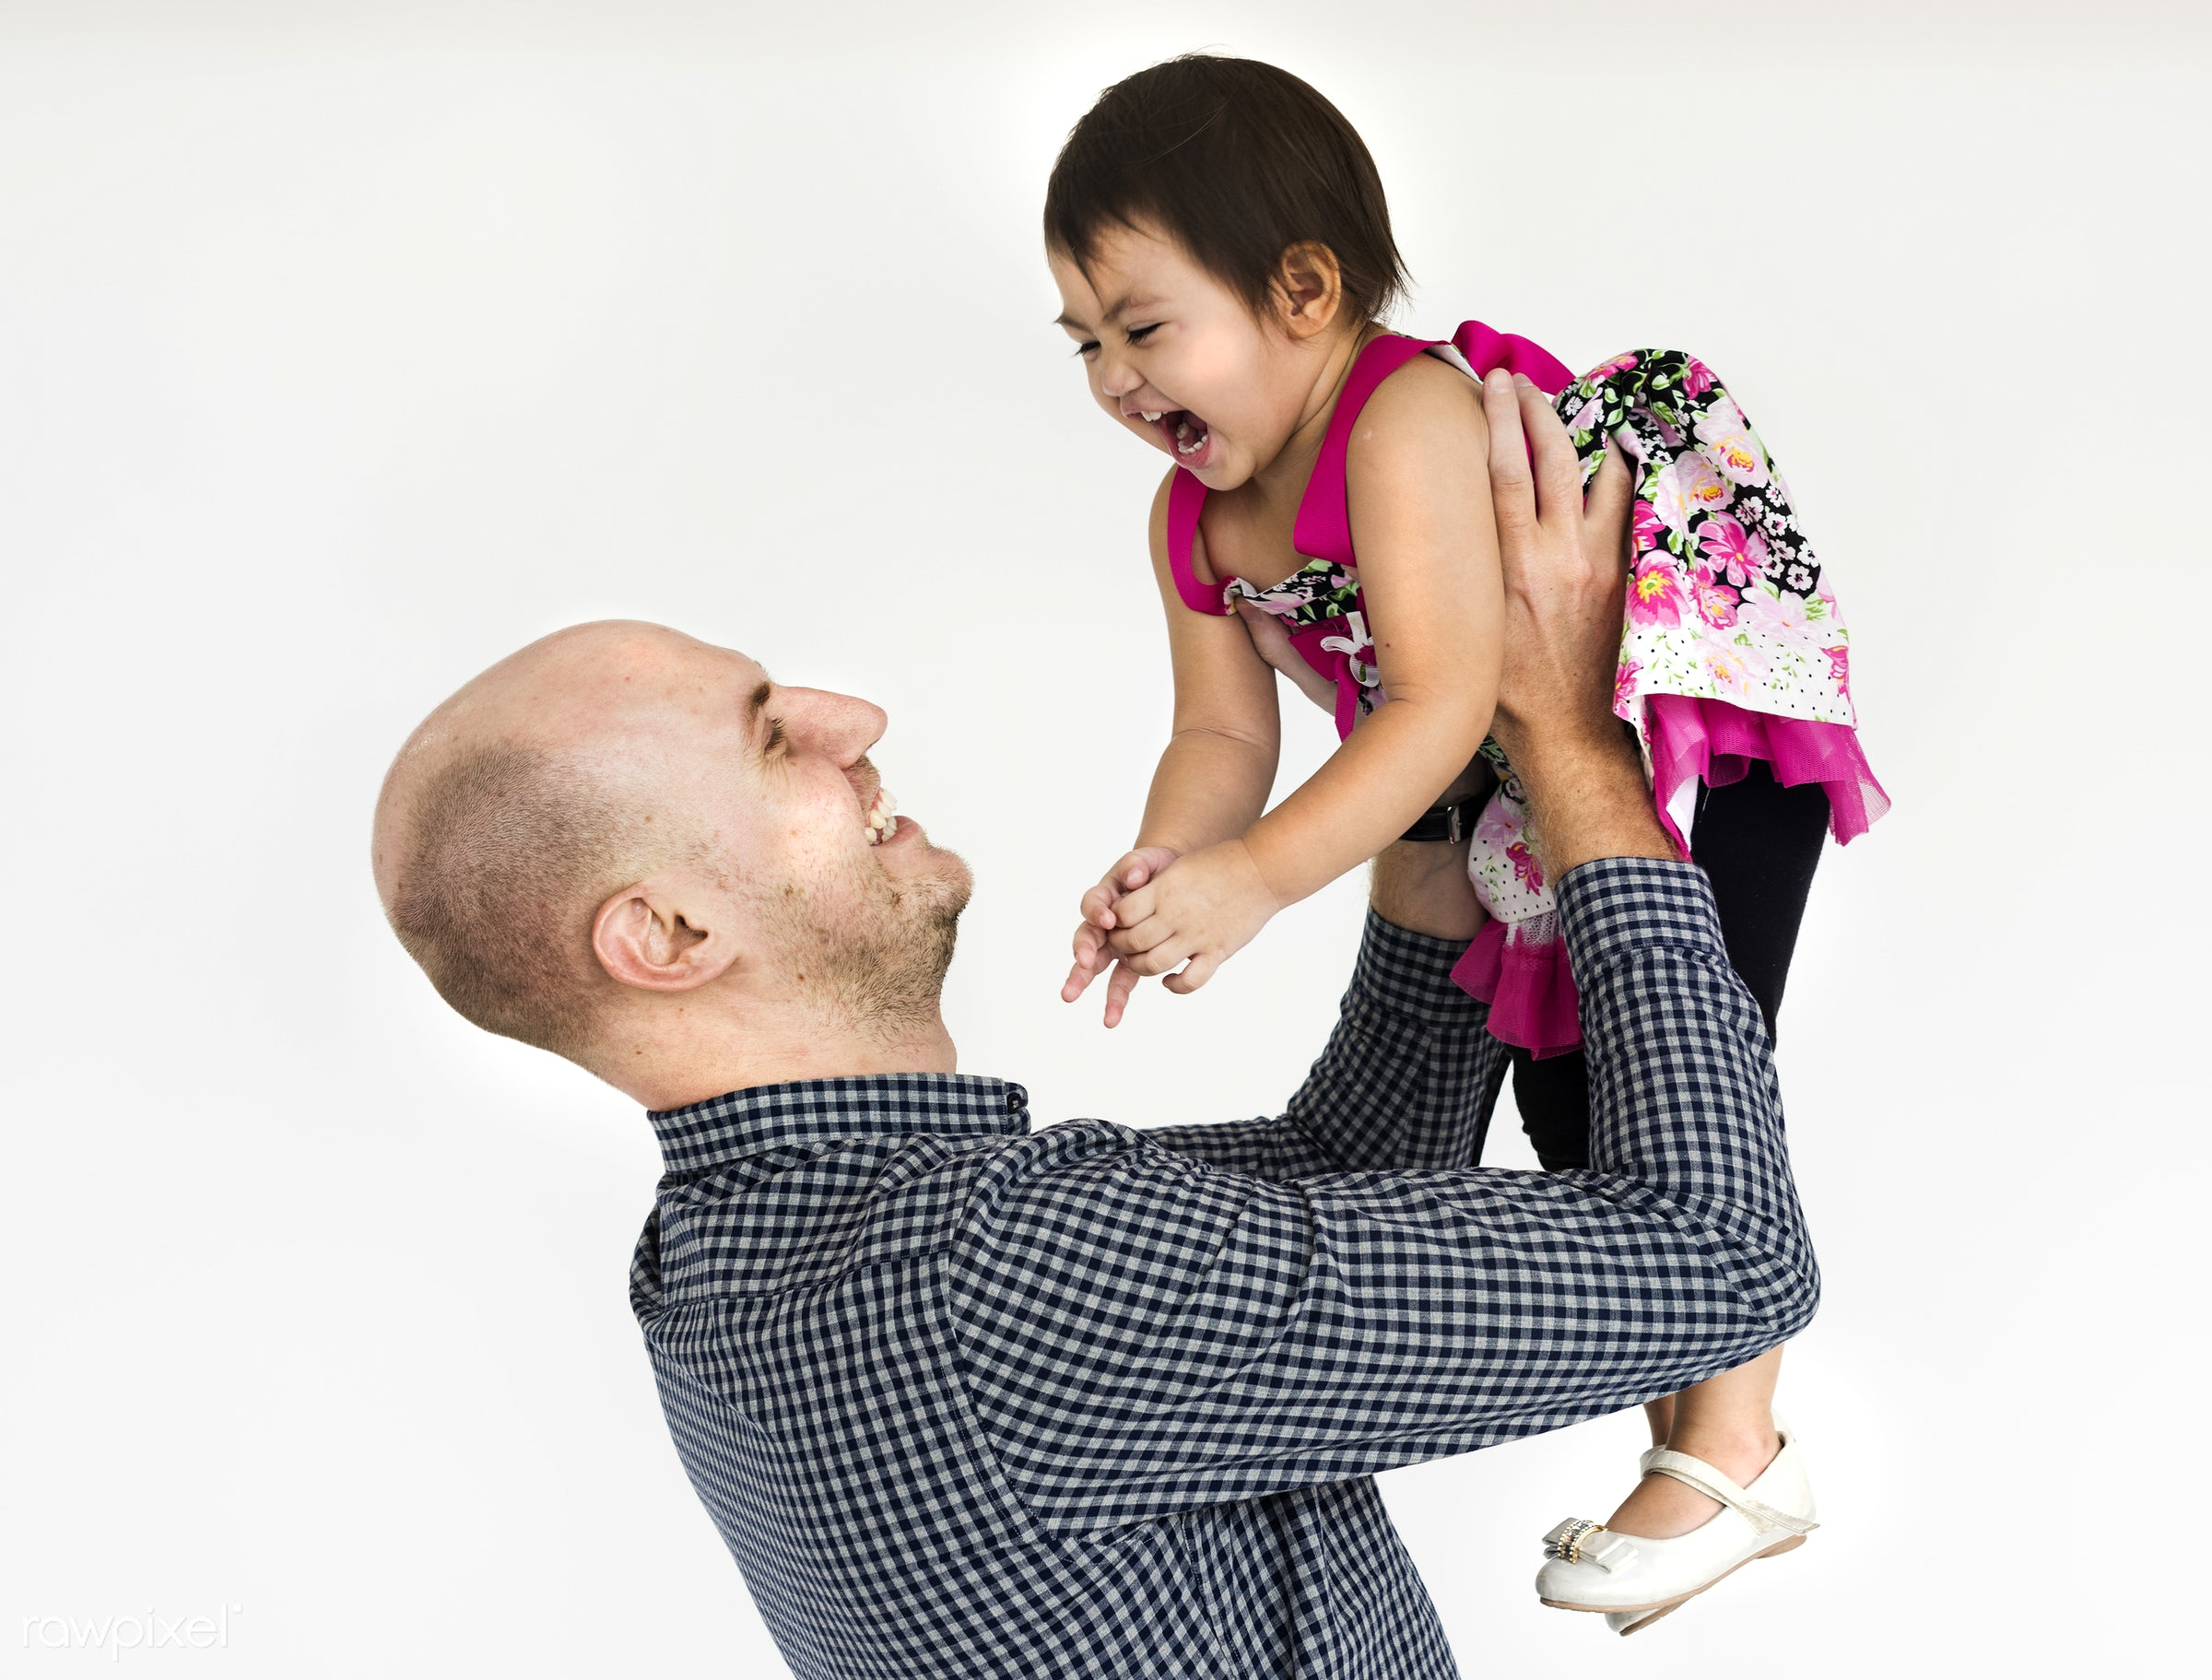 studio, expression, person, people, kid, love, family, childhood, smile, cheerful, smiling, isolated, white, happiness,...